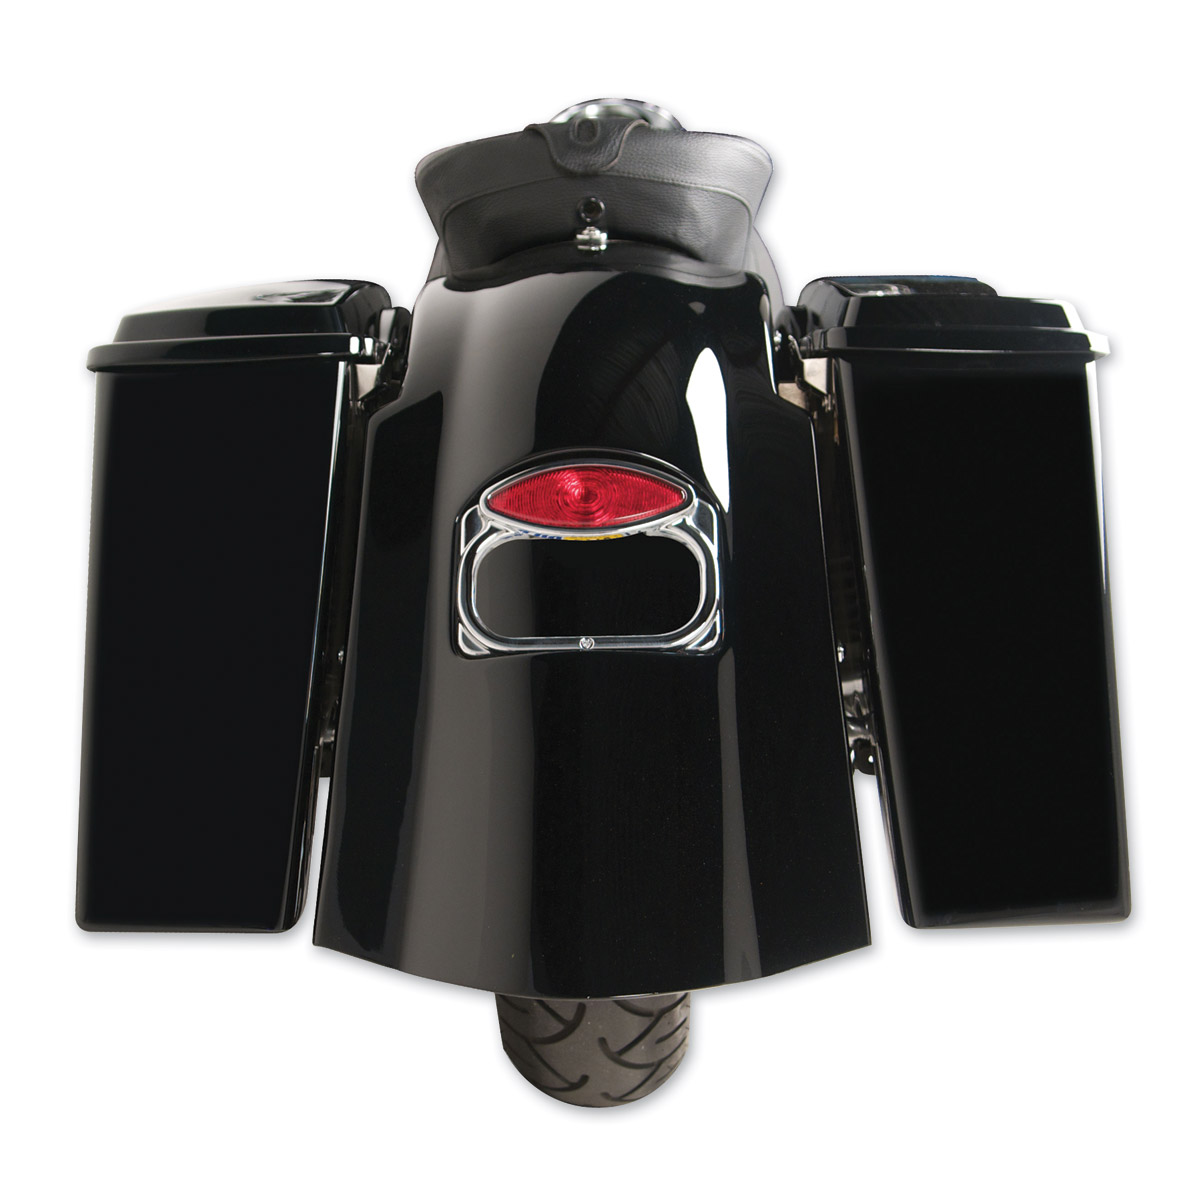 Arlen Ness Bagger-Tail Rear Fender with No Cut-Outs